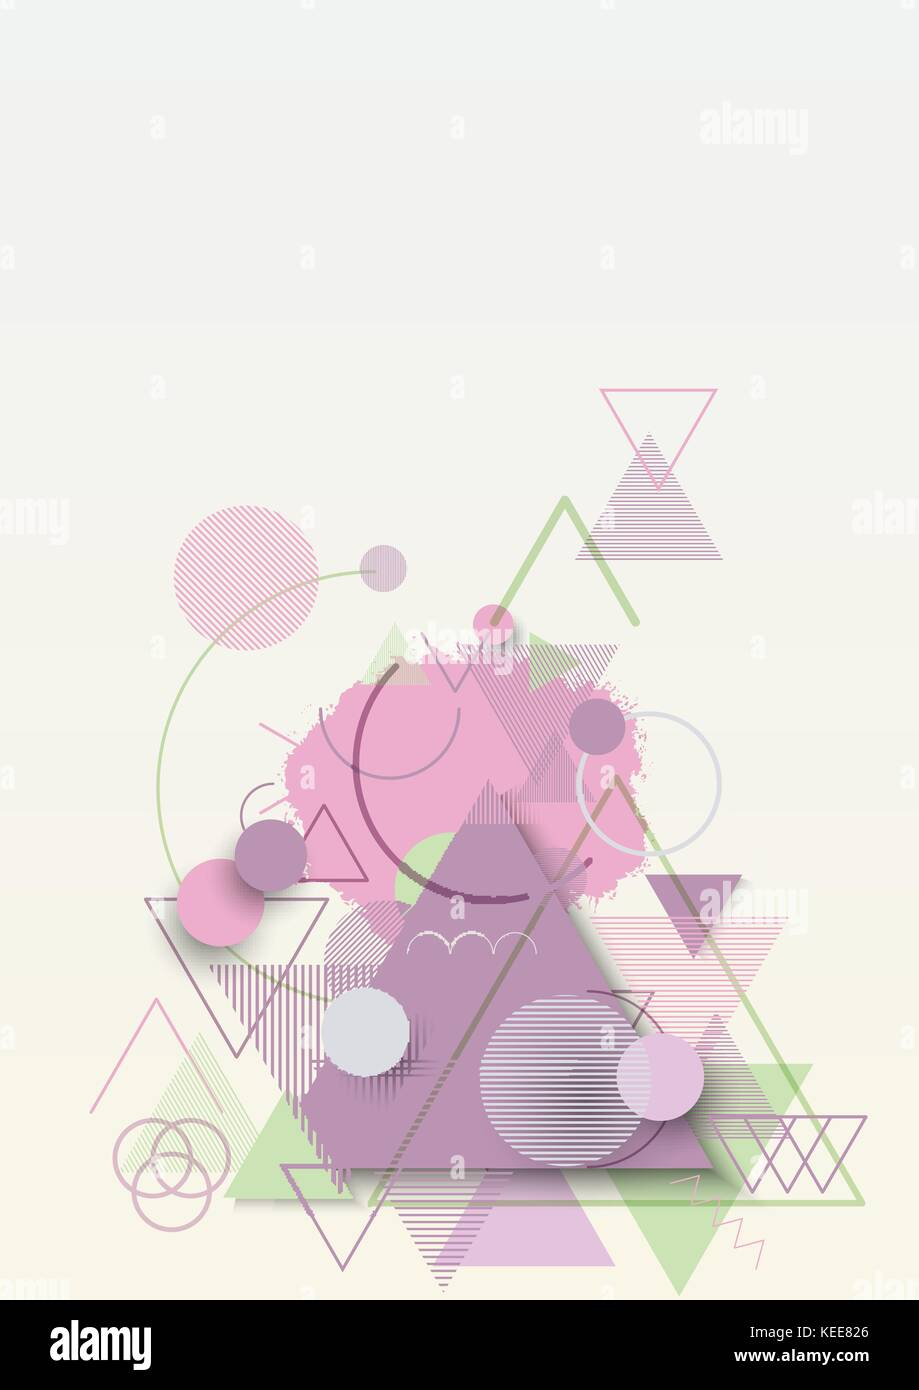 Abstract geometric flat background - Stock Image